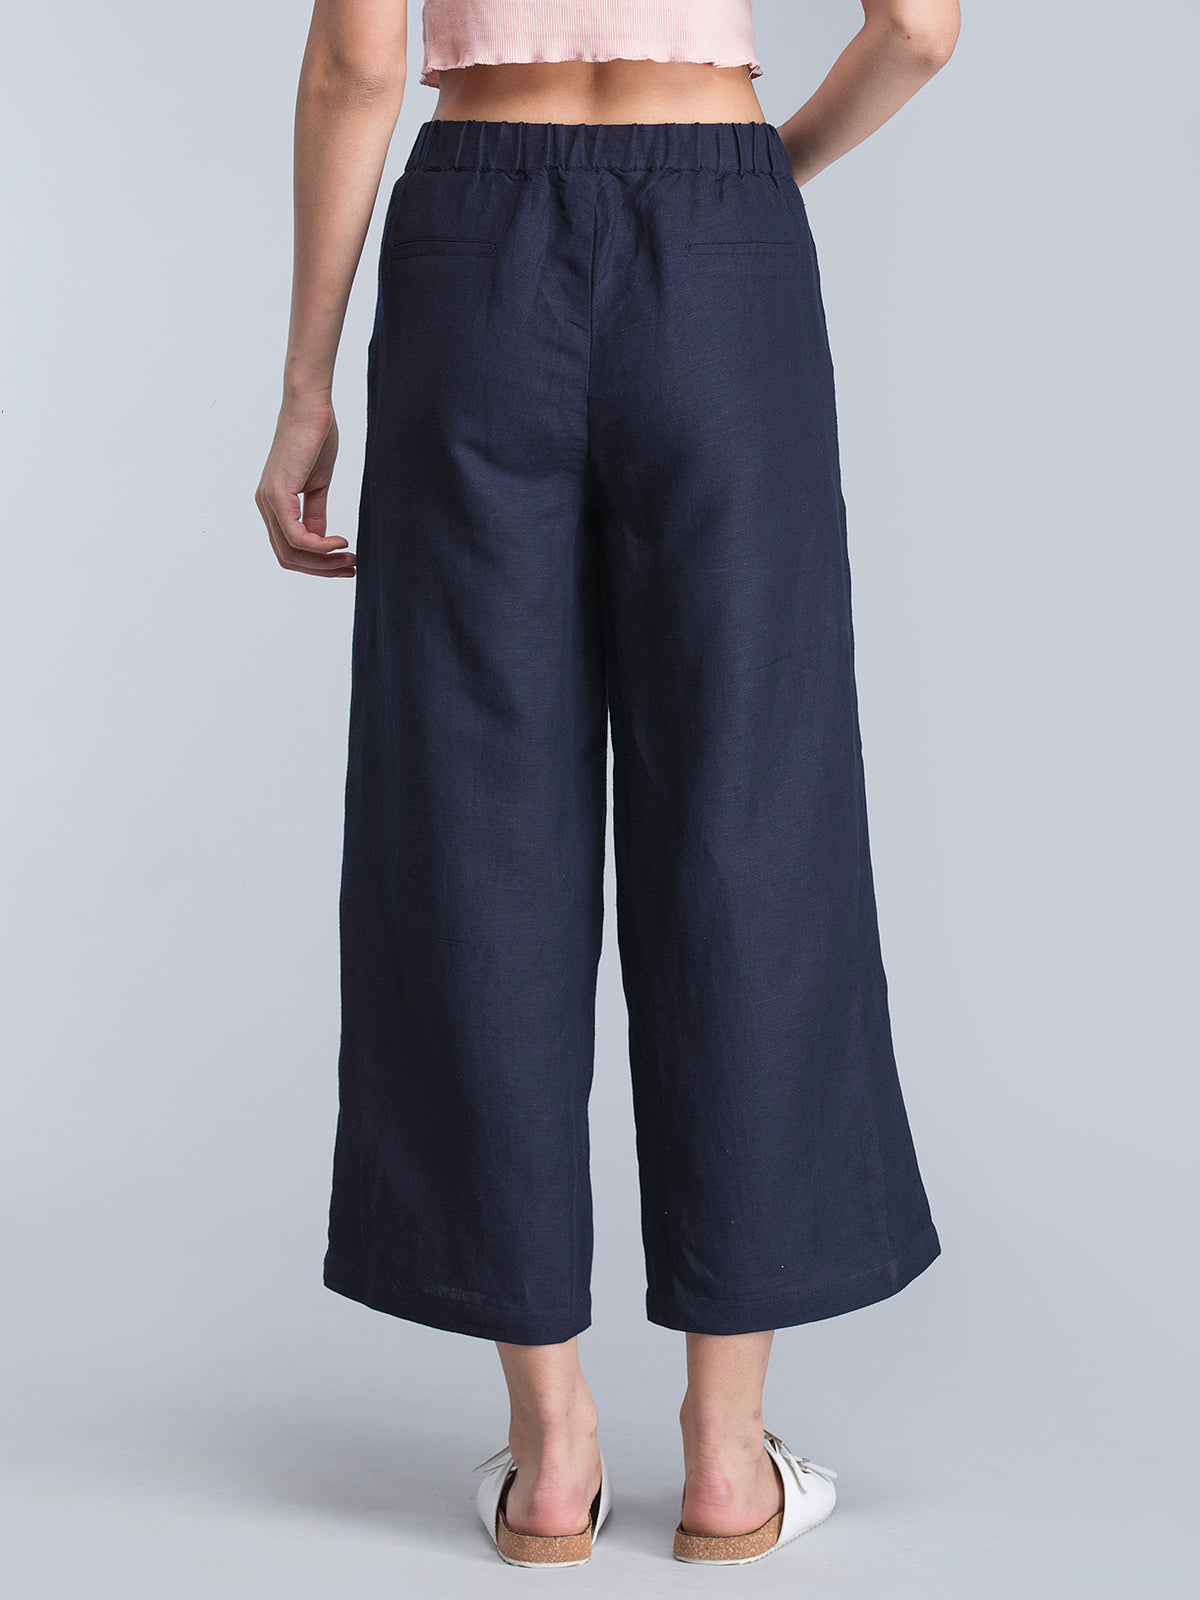 Wide Leg Pants With Elasticated Band - Navy